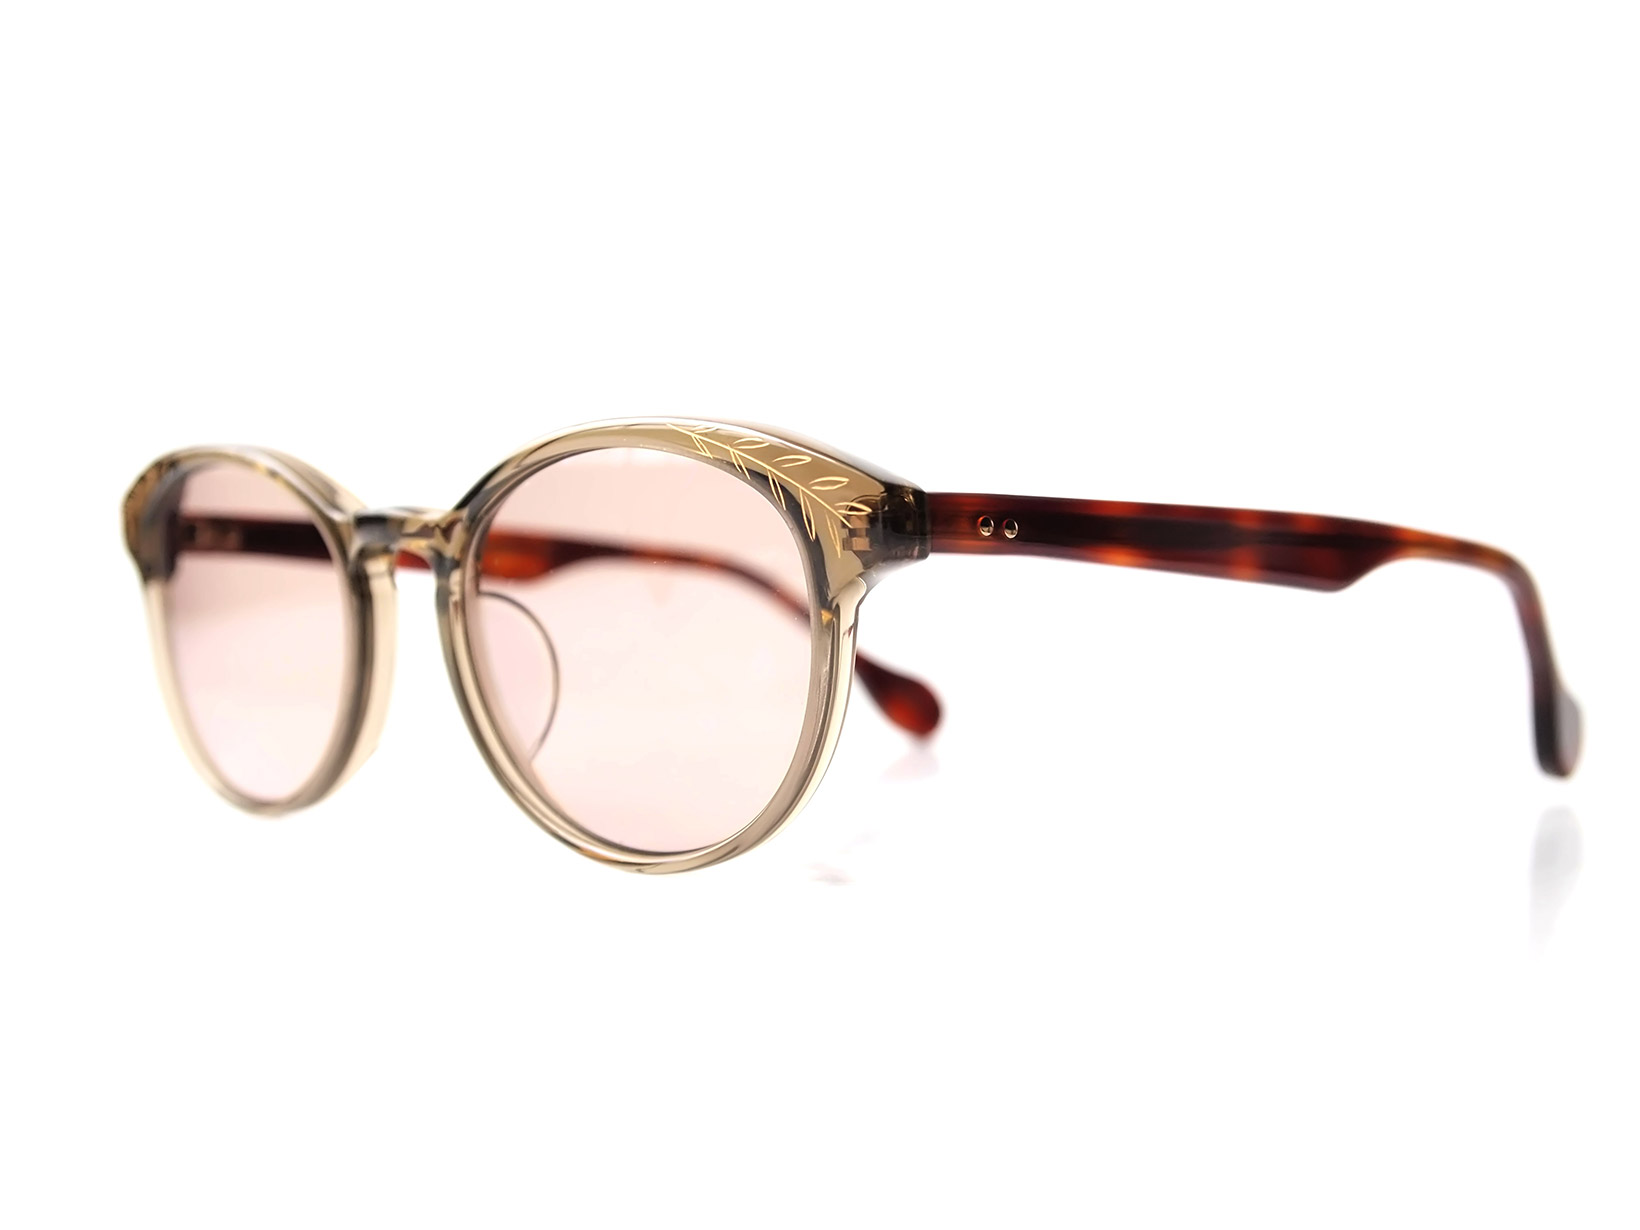 AKITTO 2017-3rd kin color 2489 size:48□19 material: acetate+gold price:39800-(+tax)